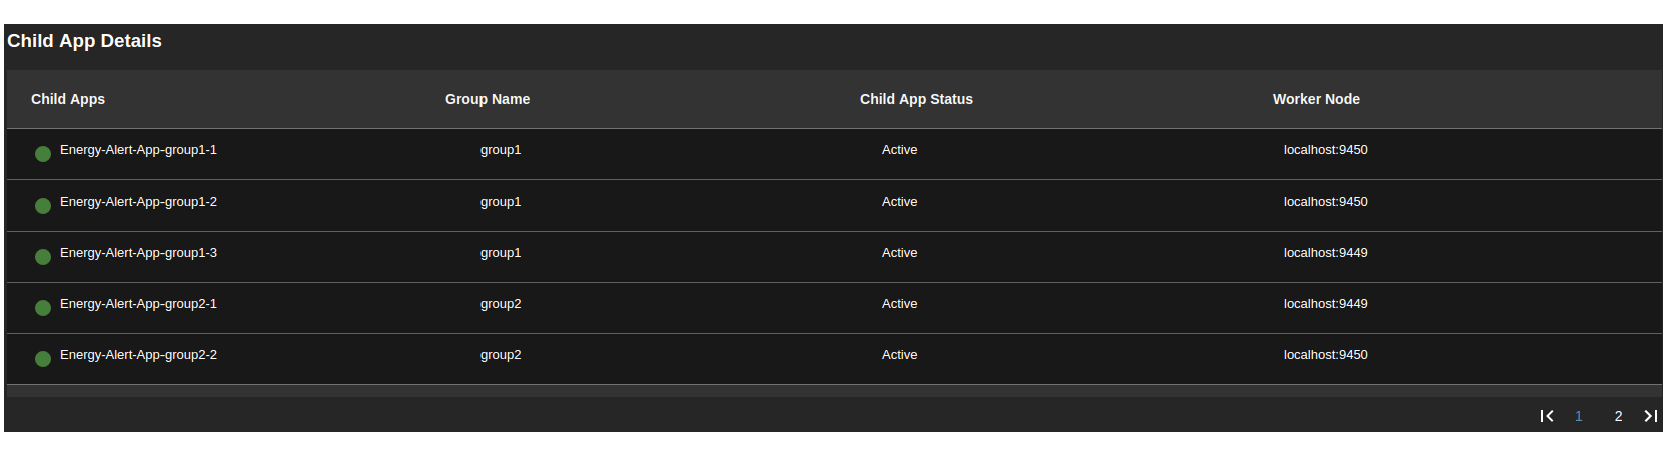 WSO2 Stream Processor Status Dashboard showing how the child applications get deployed in the distributed cluster